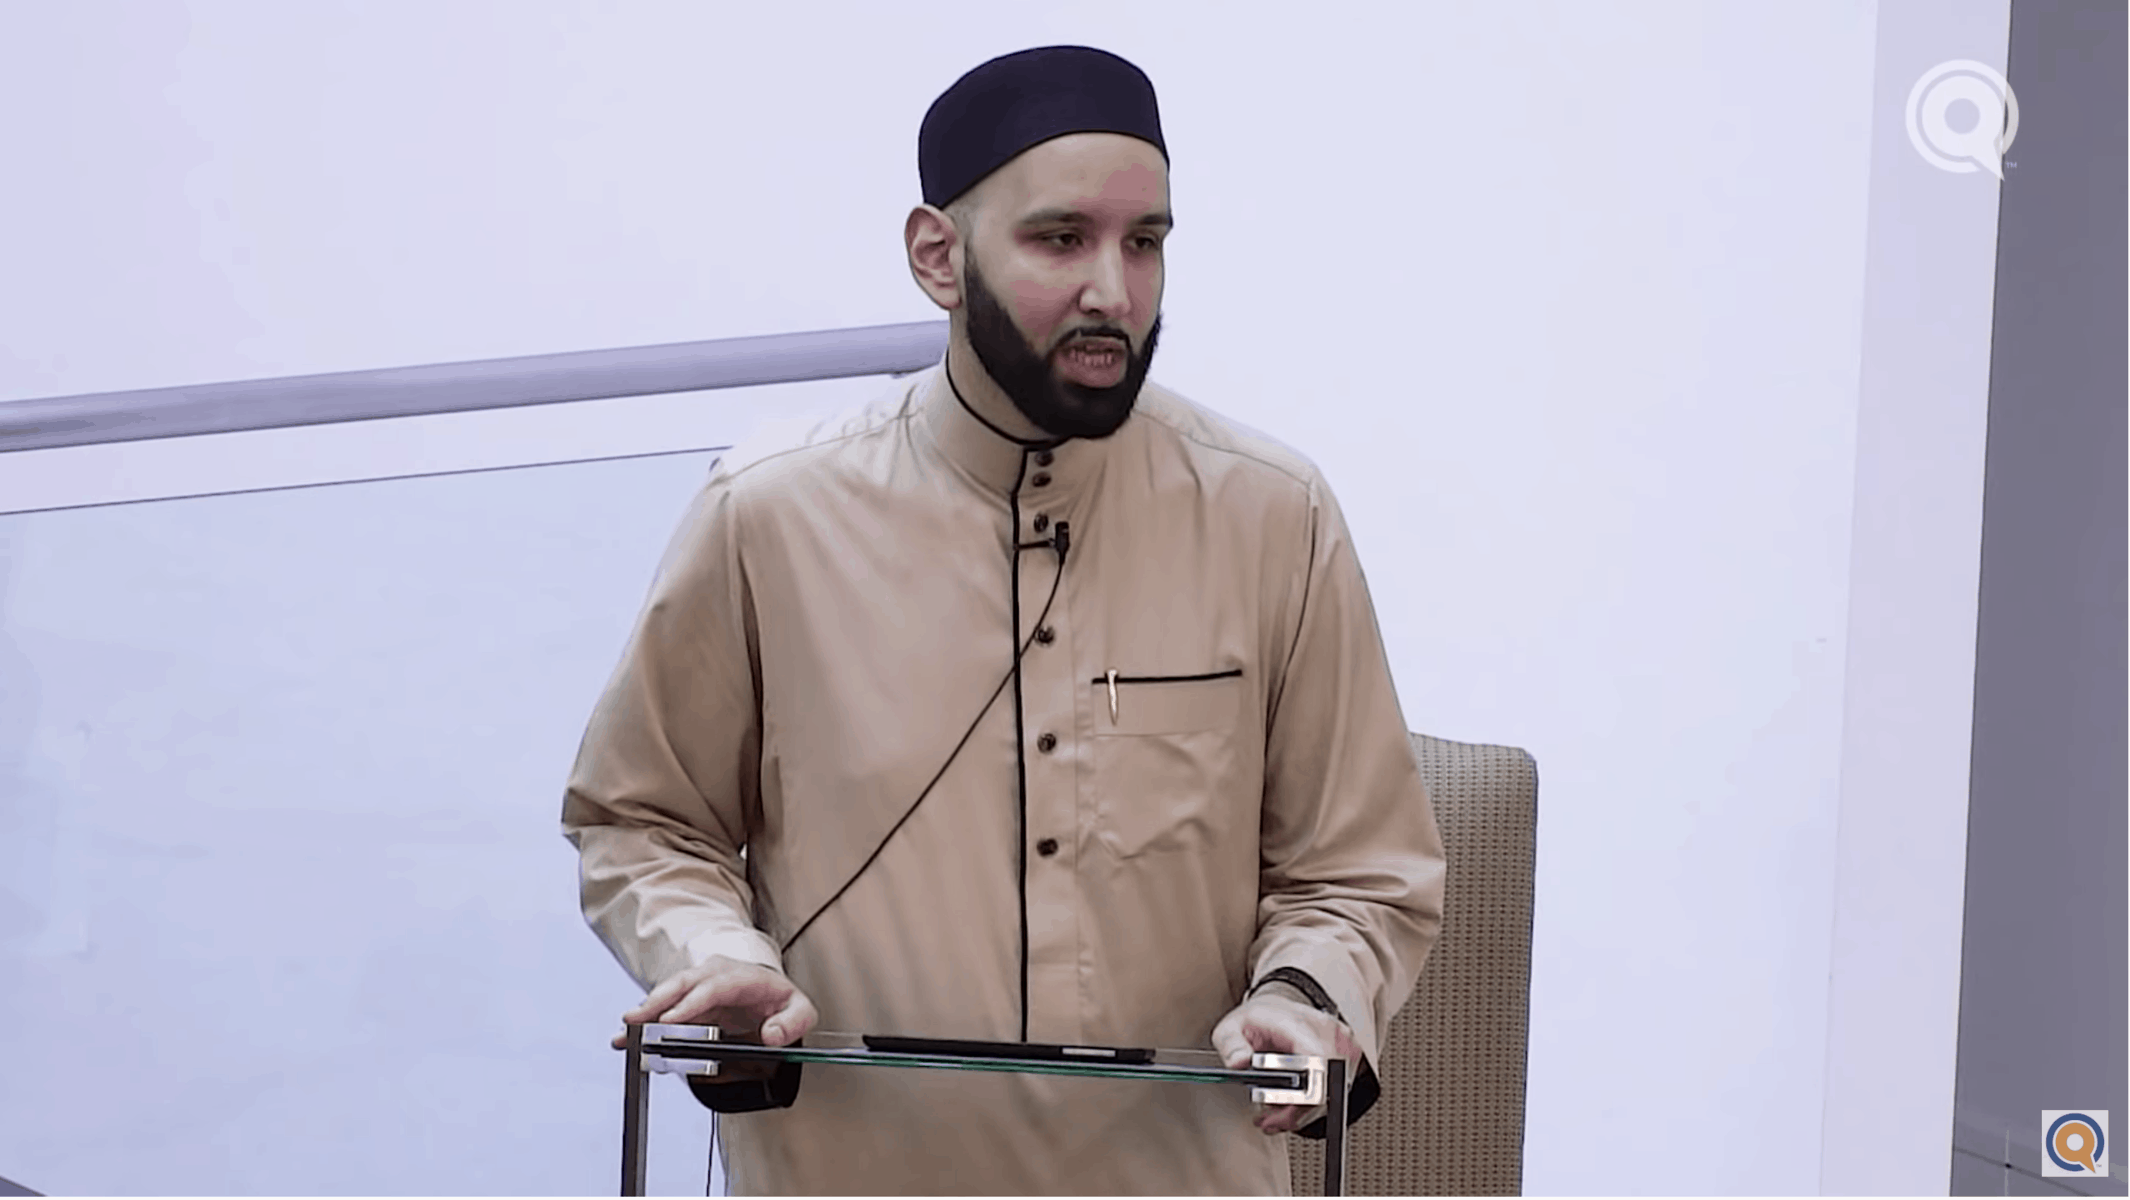 Omar Suleiman – What's in a Name and What's Your Defining Quality?